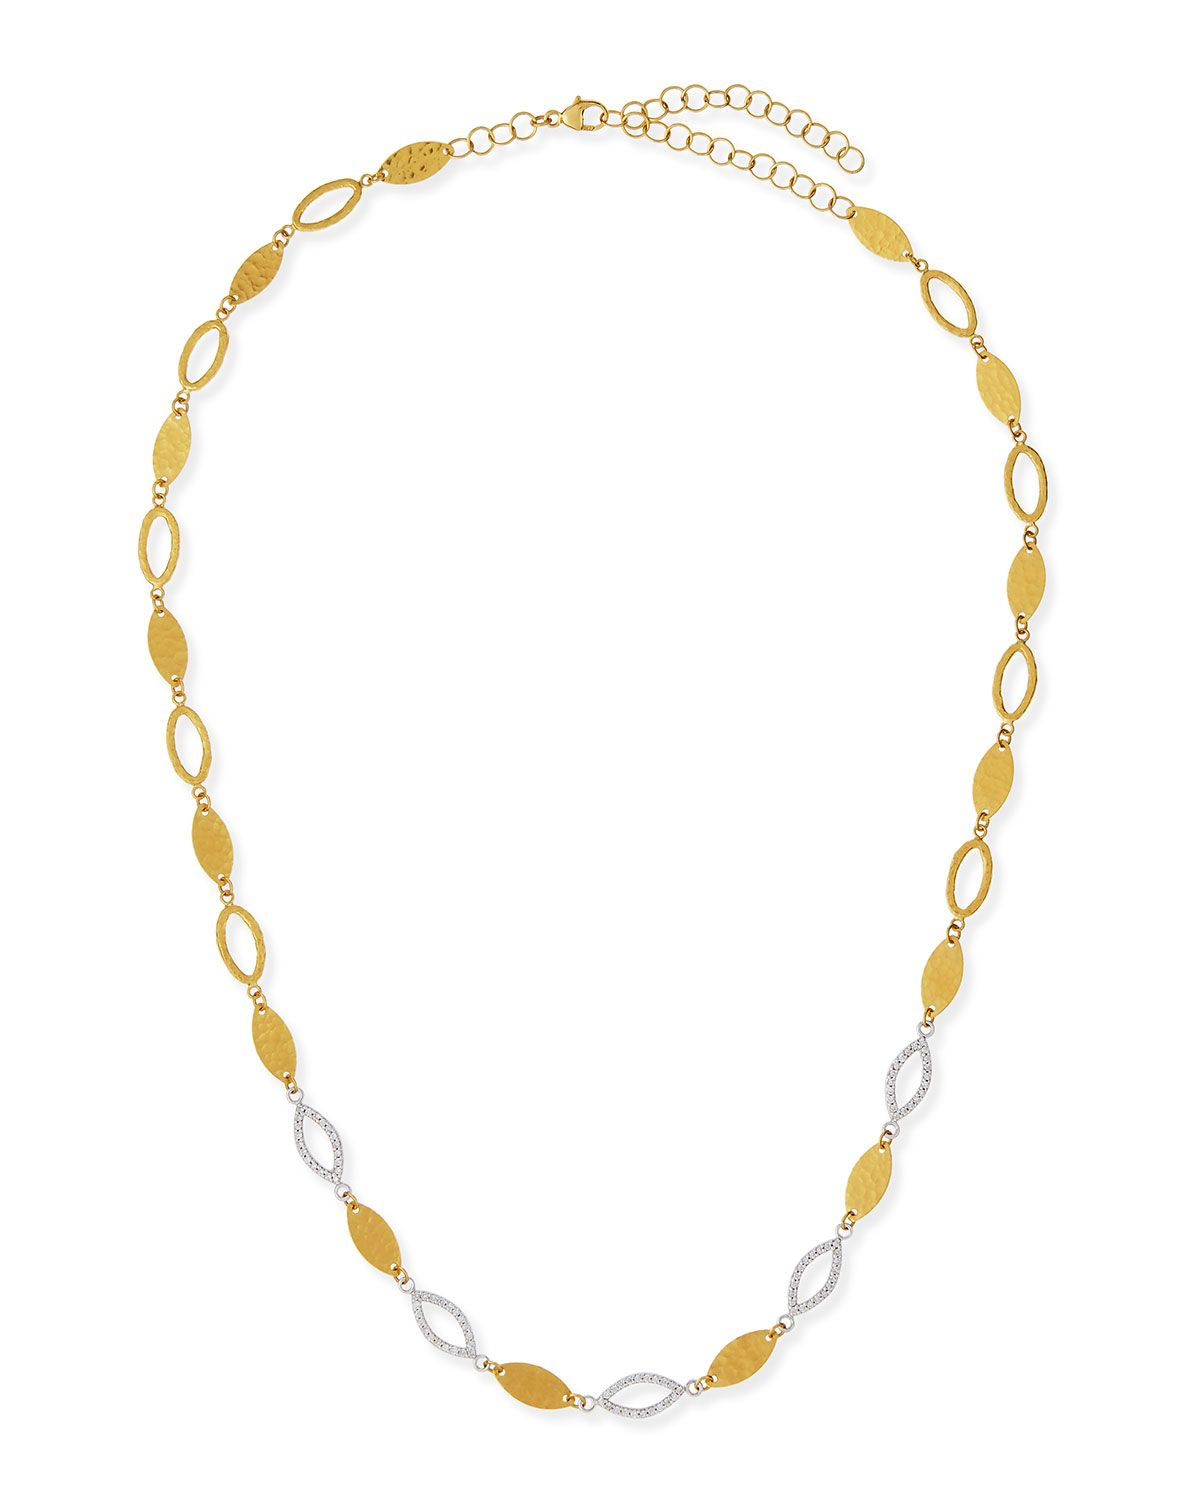 Willow 24k Gold & Diamond Short Necklace - Gurhan